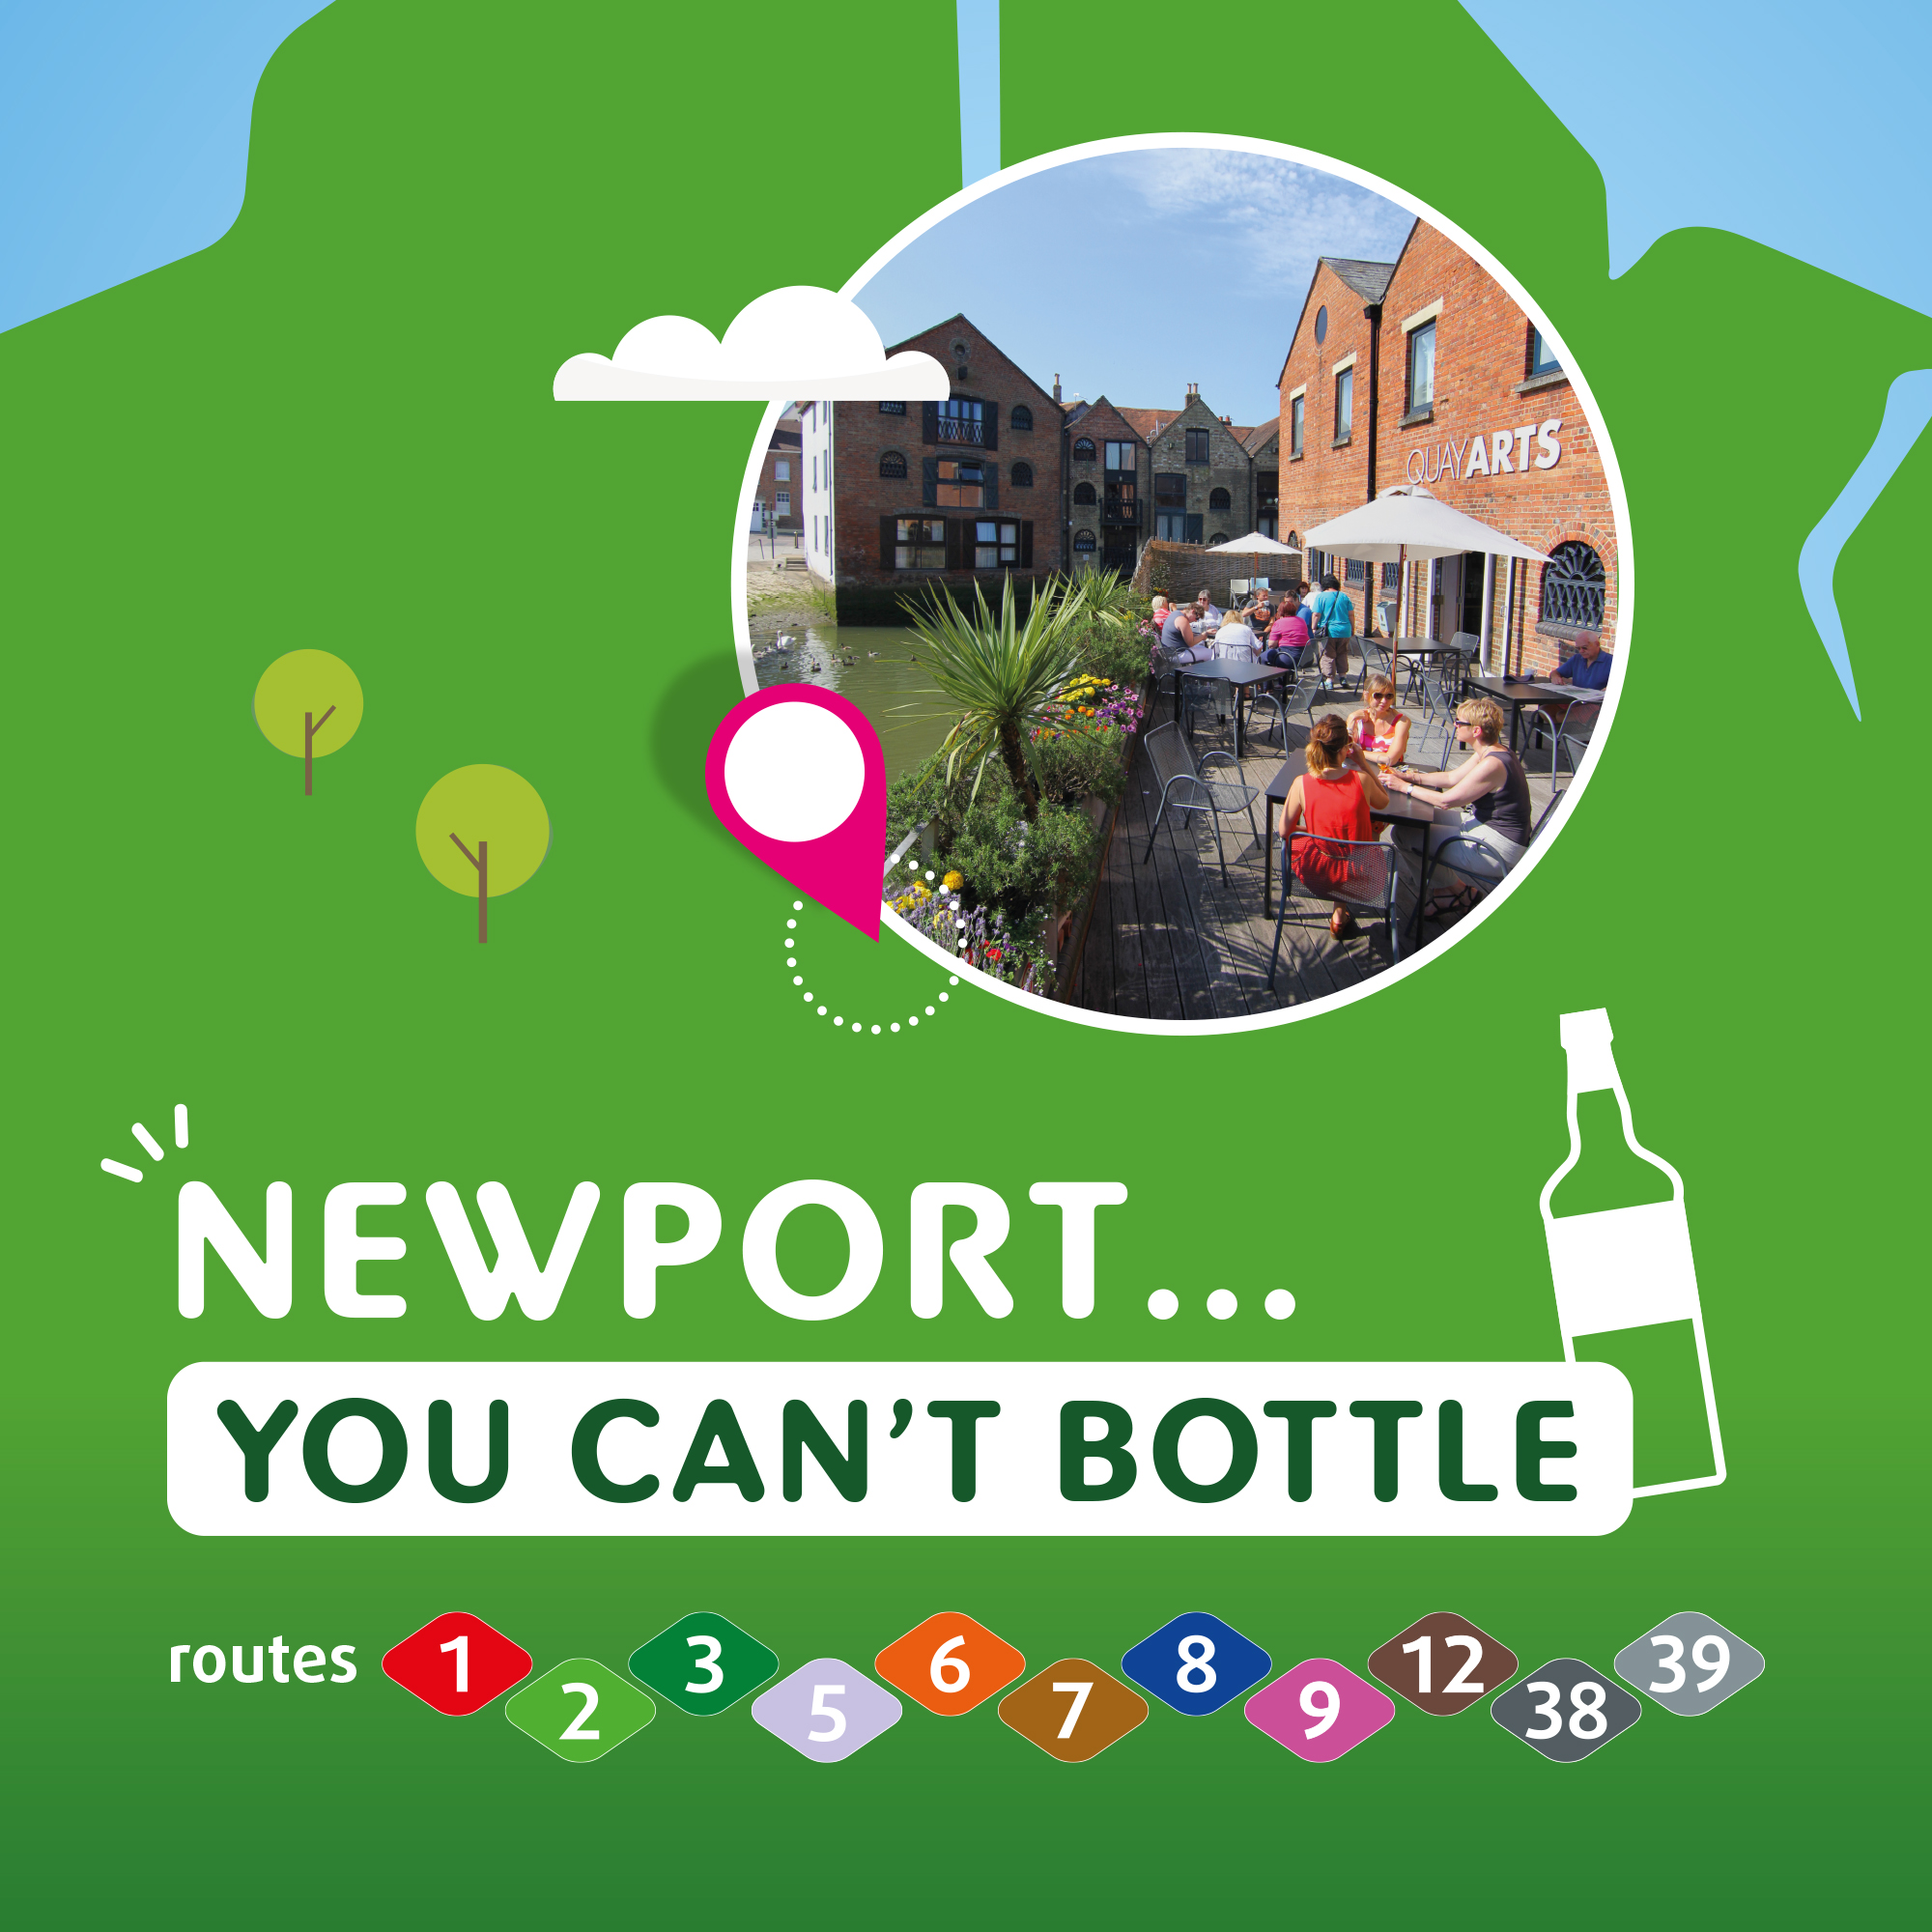 Illustration of Newport you can't bottle